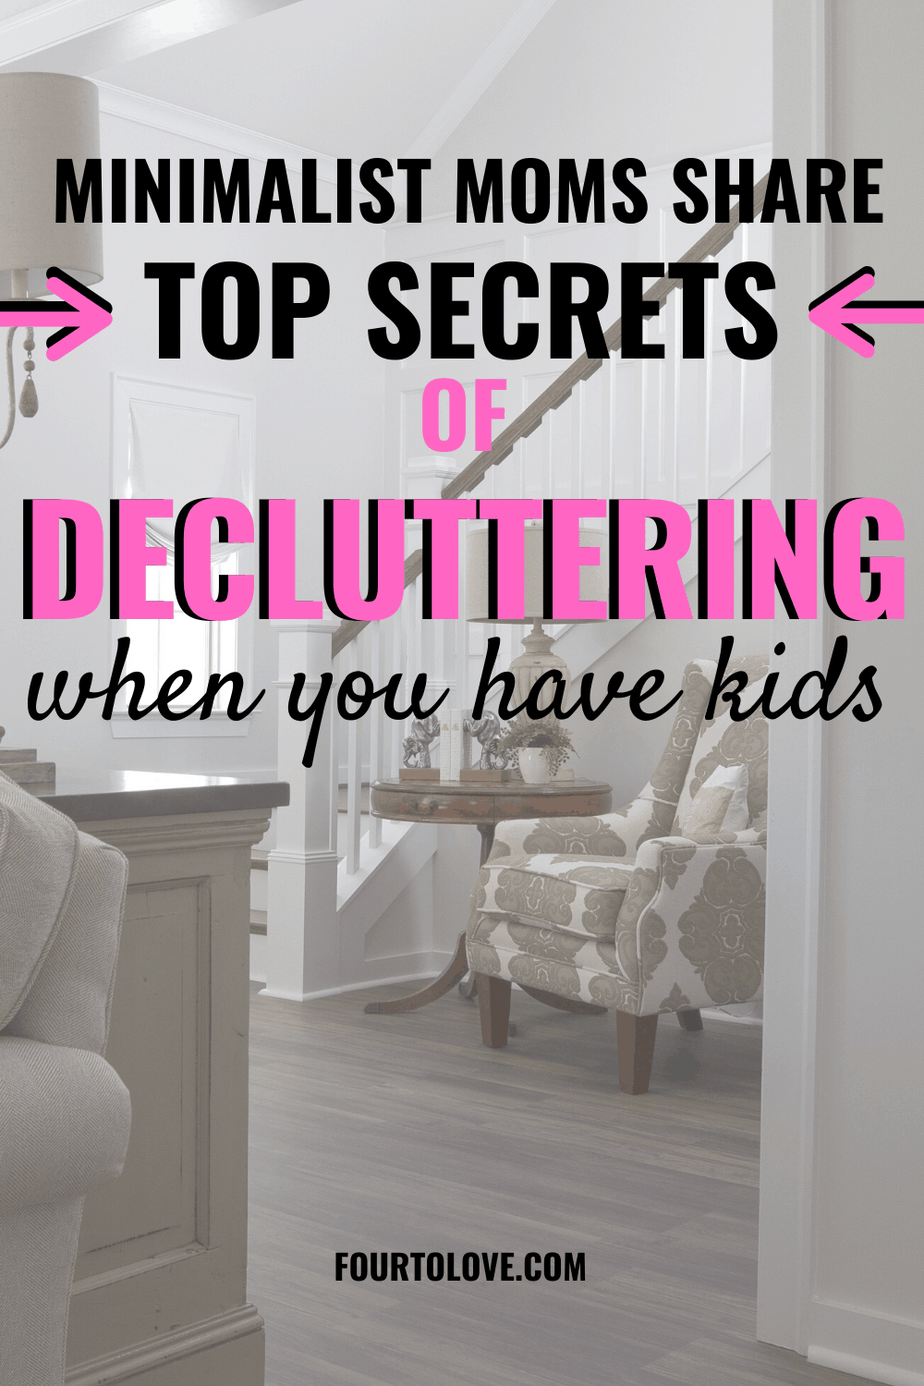 Top secrets of decluttering when you have kids